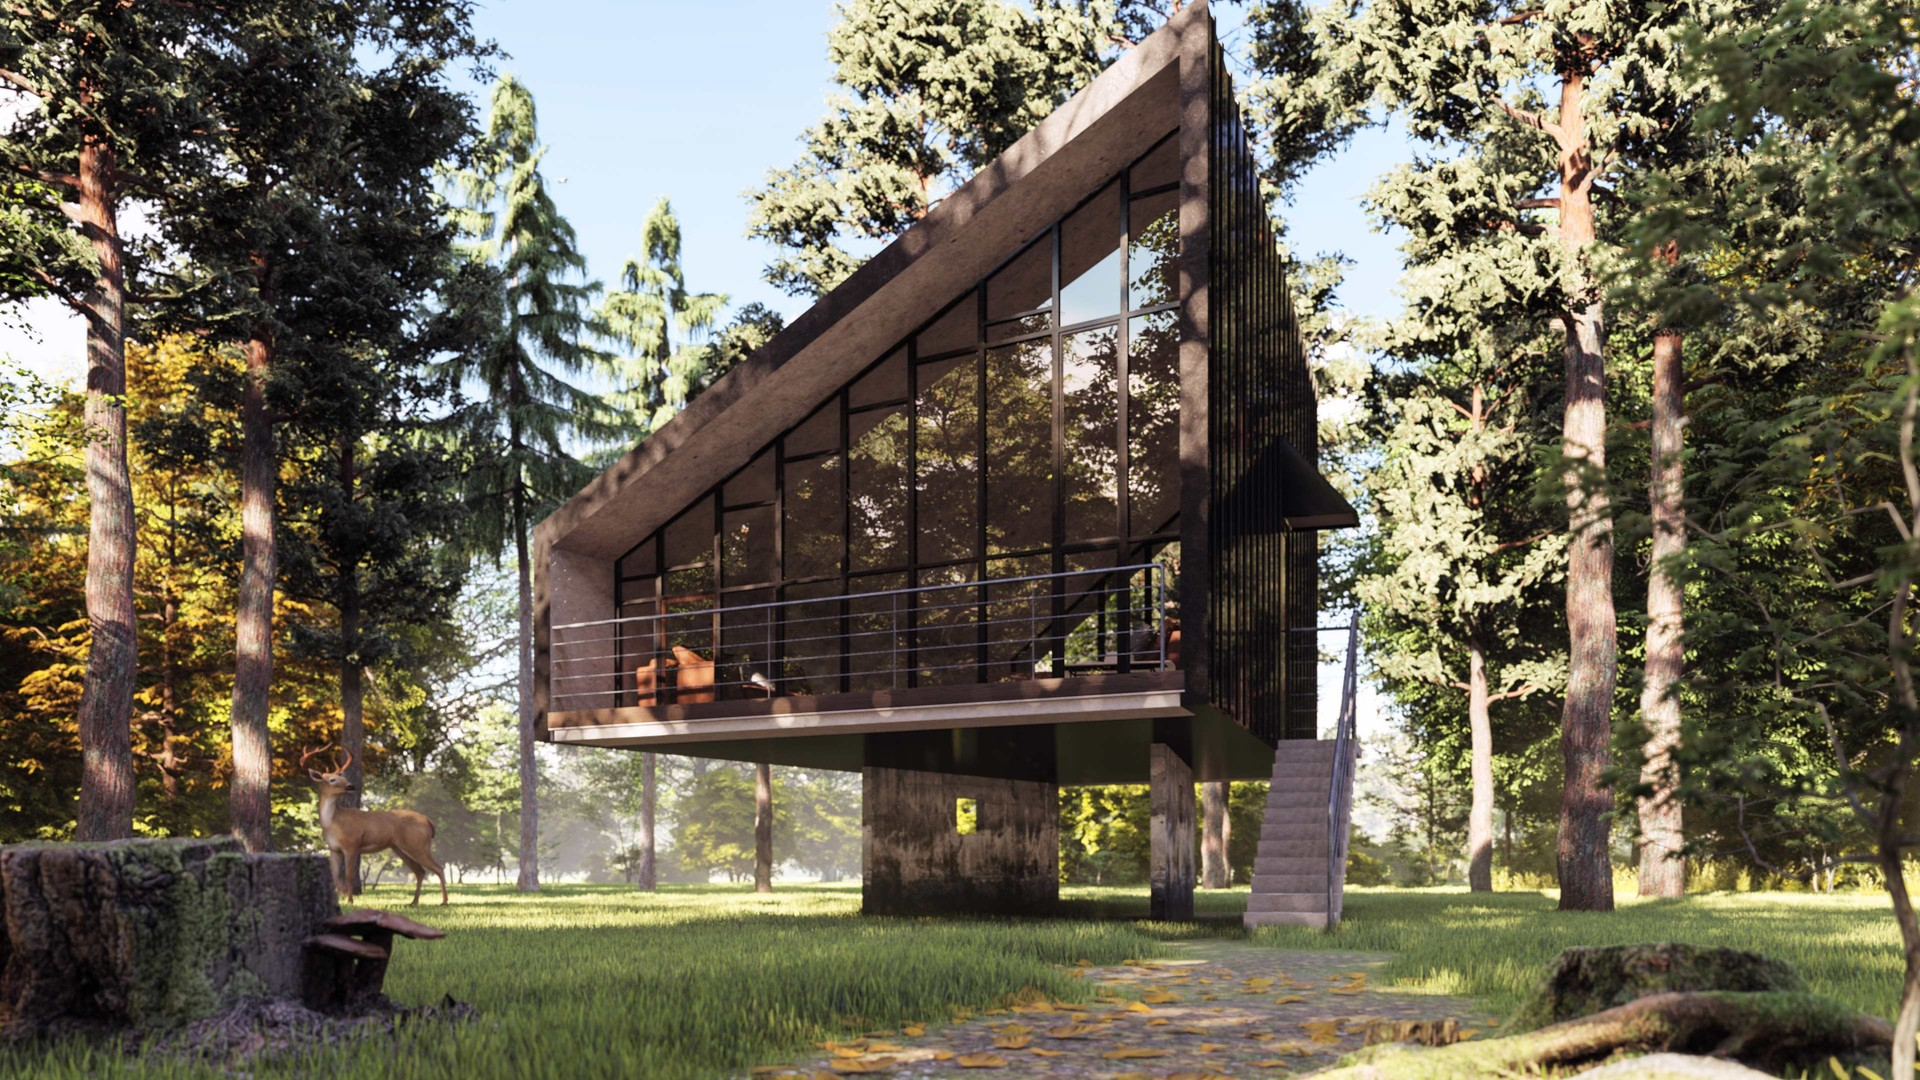 ArtStation - House in nature visualization Lumion 8